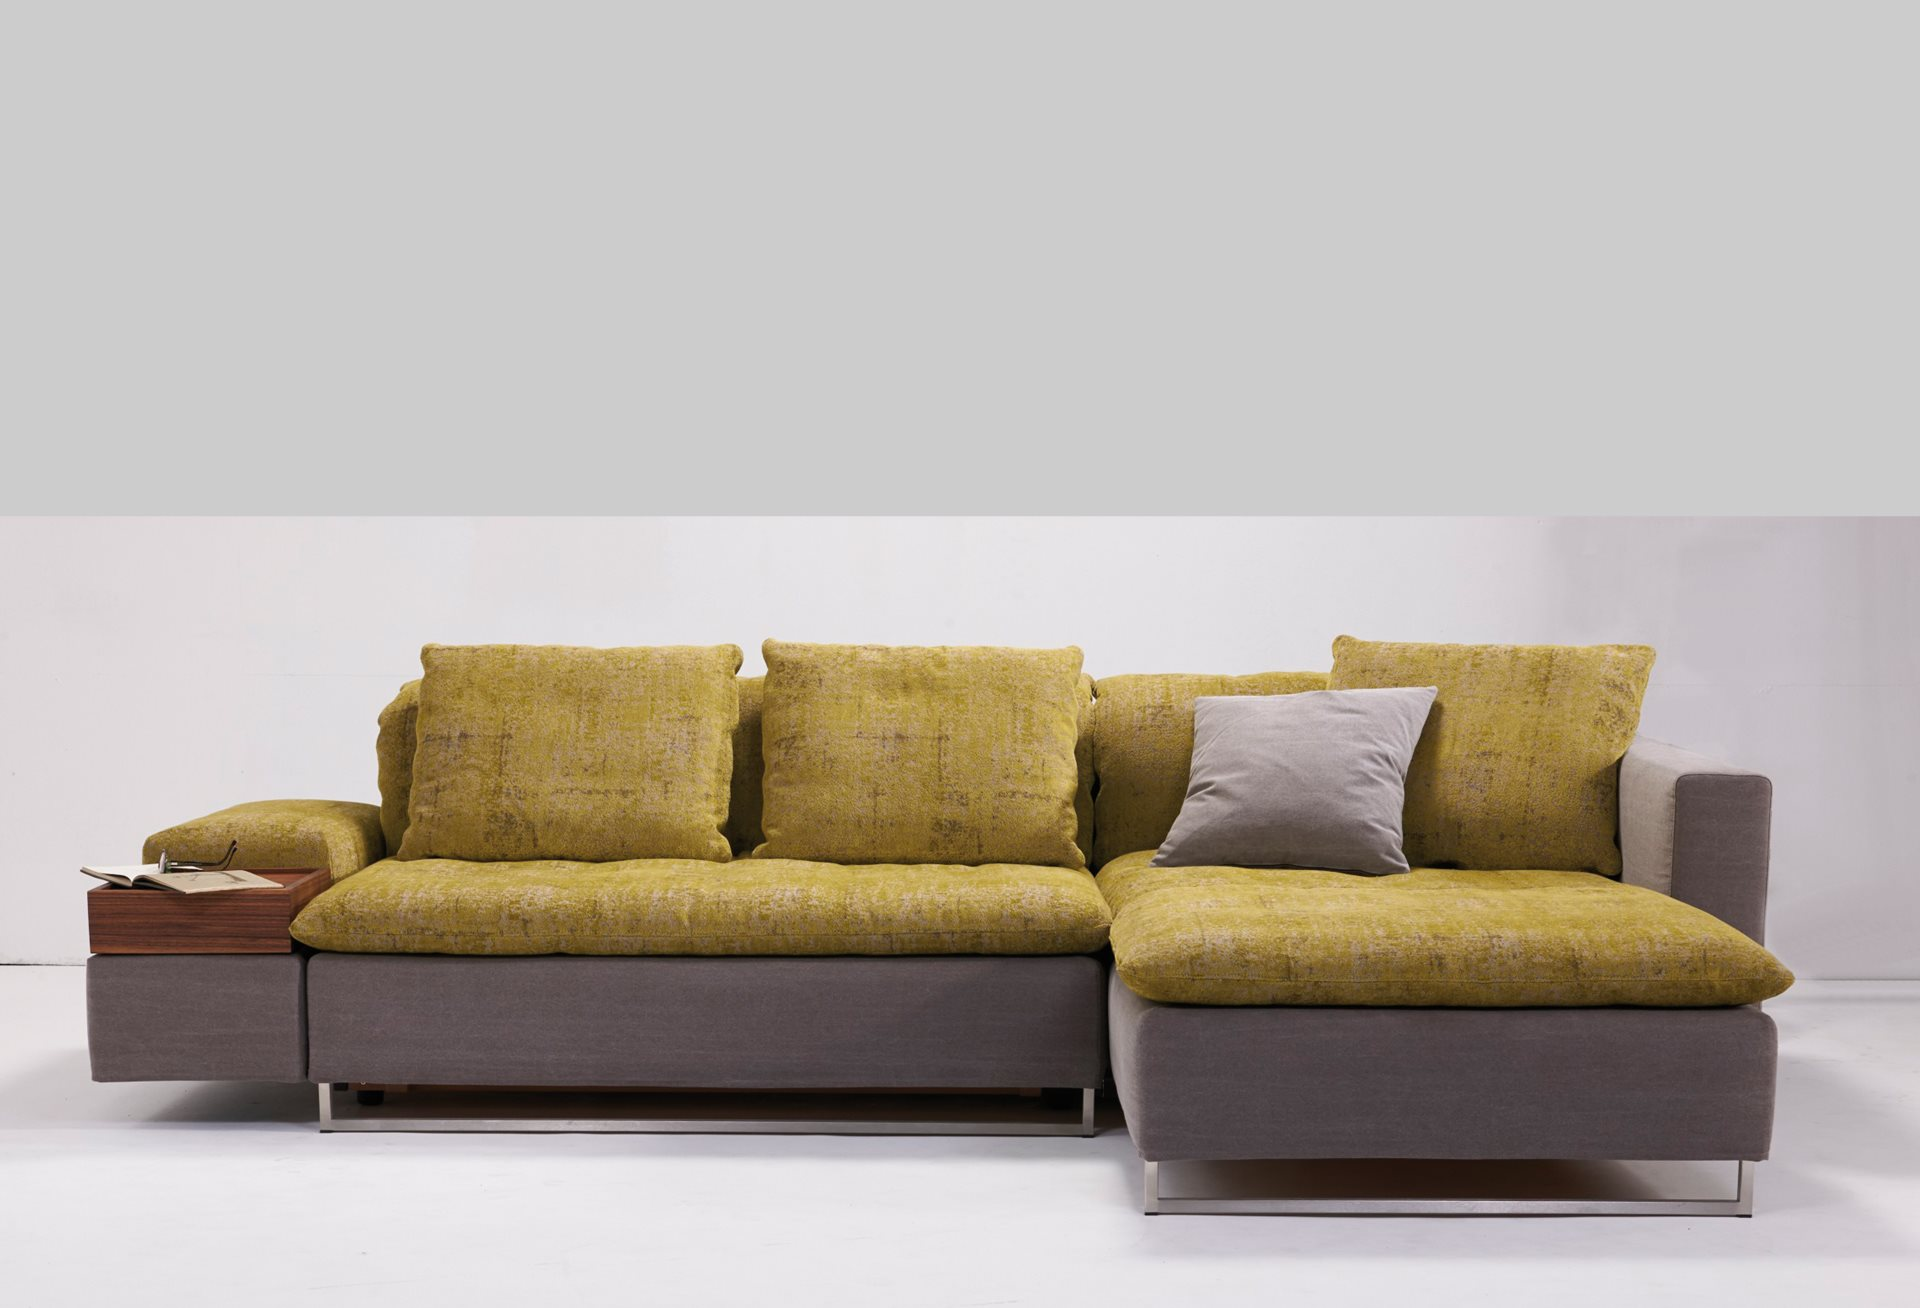 Chaiselongue Schlaffunktion Chaiselongue Mit Schlaffunktion Good Life Ecksofa Mit